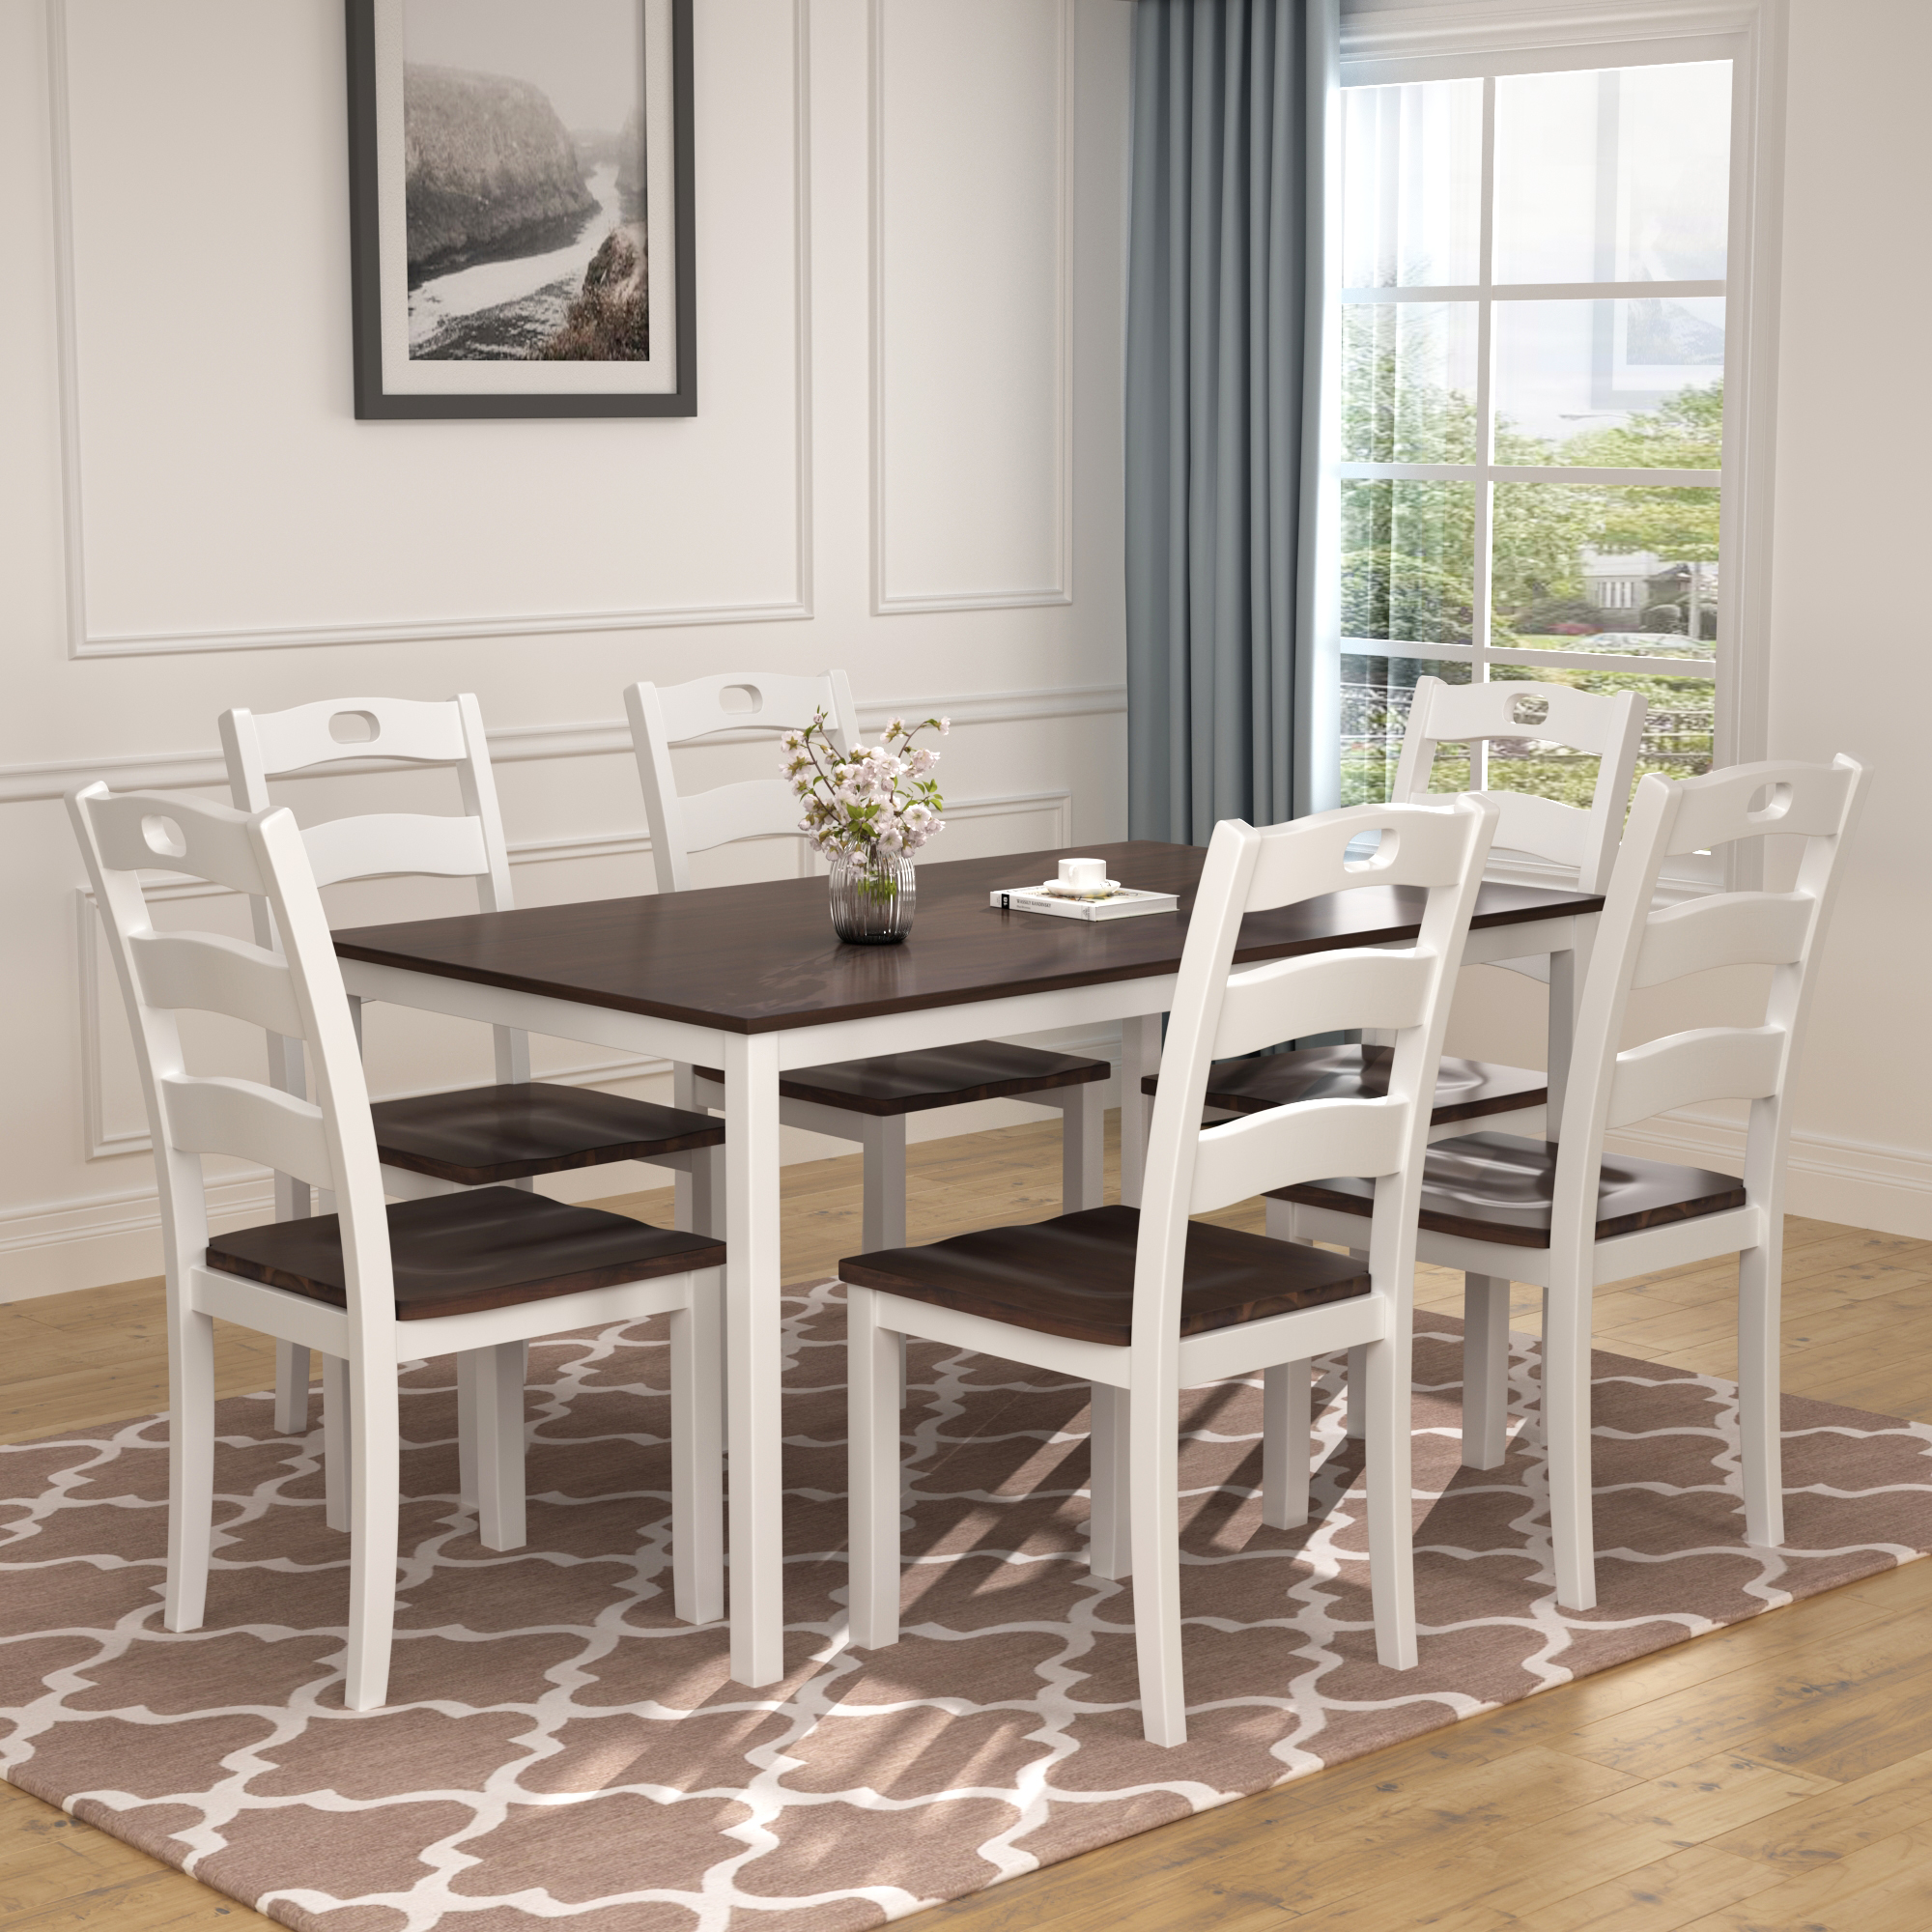 clearance dining table set with 6 chairs 7 piece wooden on dining room sets on clearance id=65975